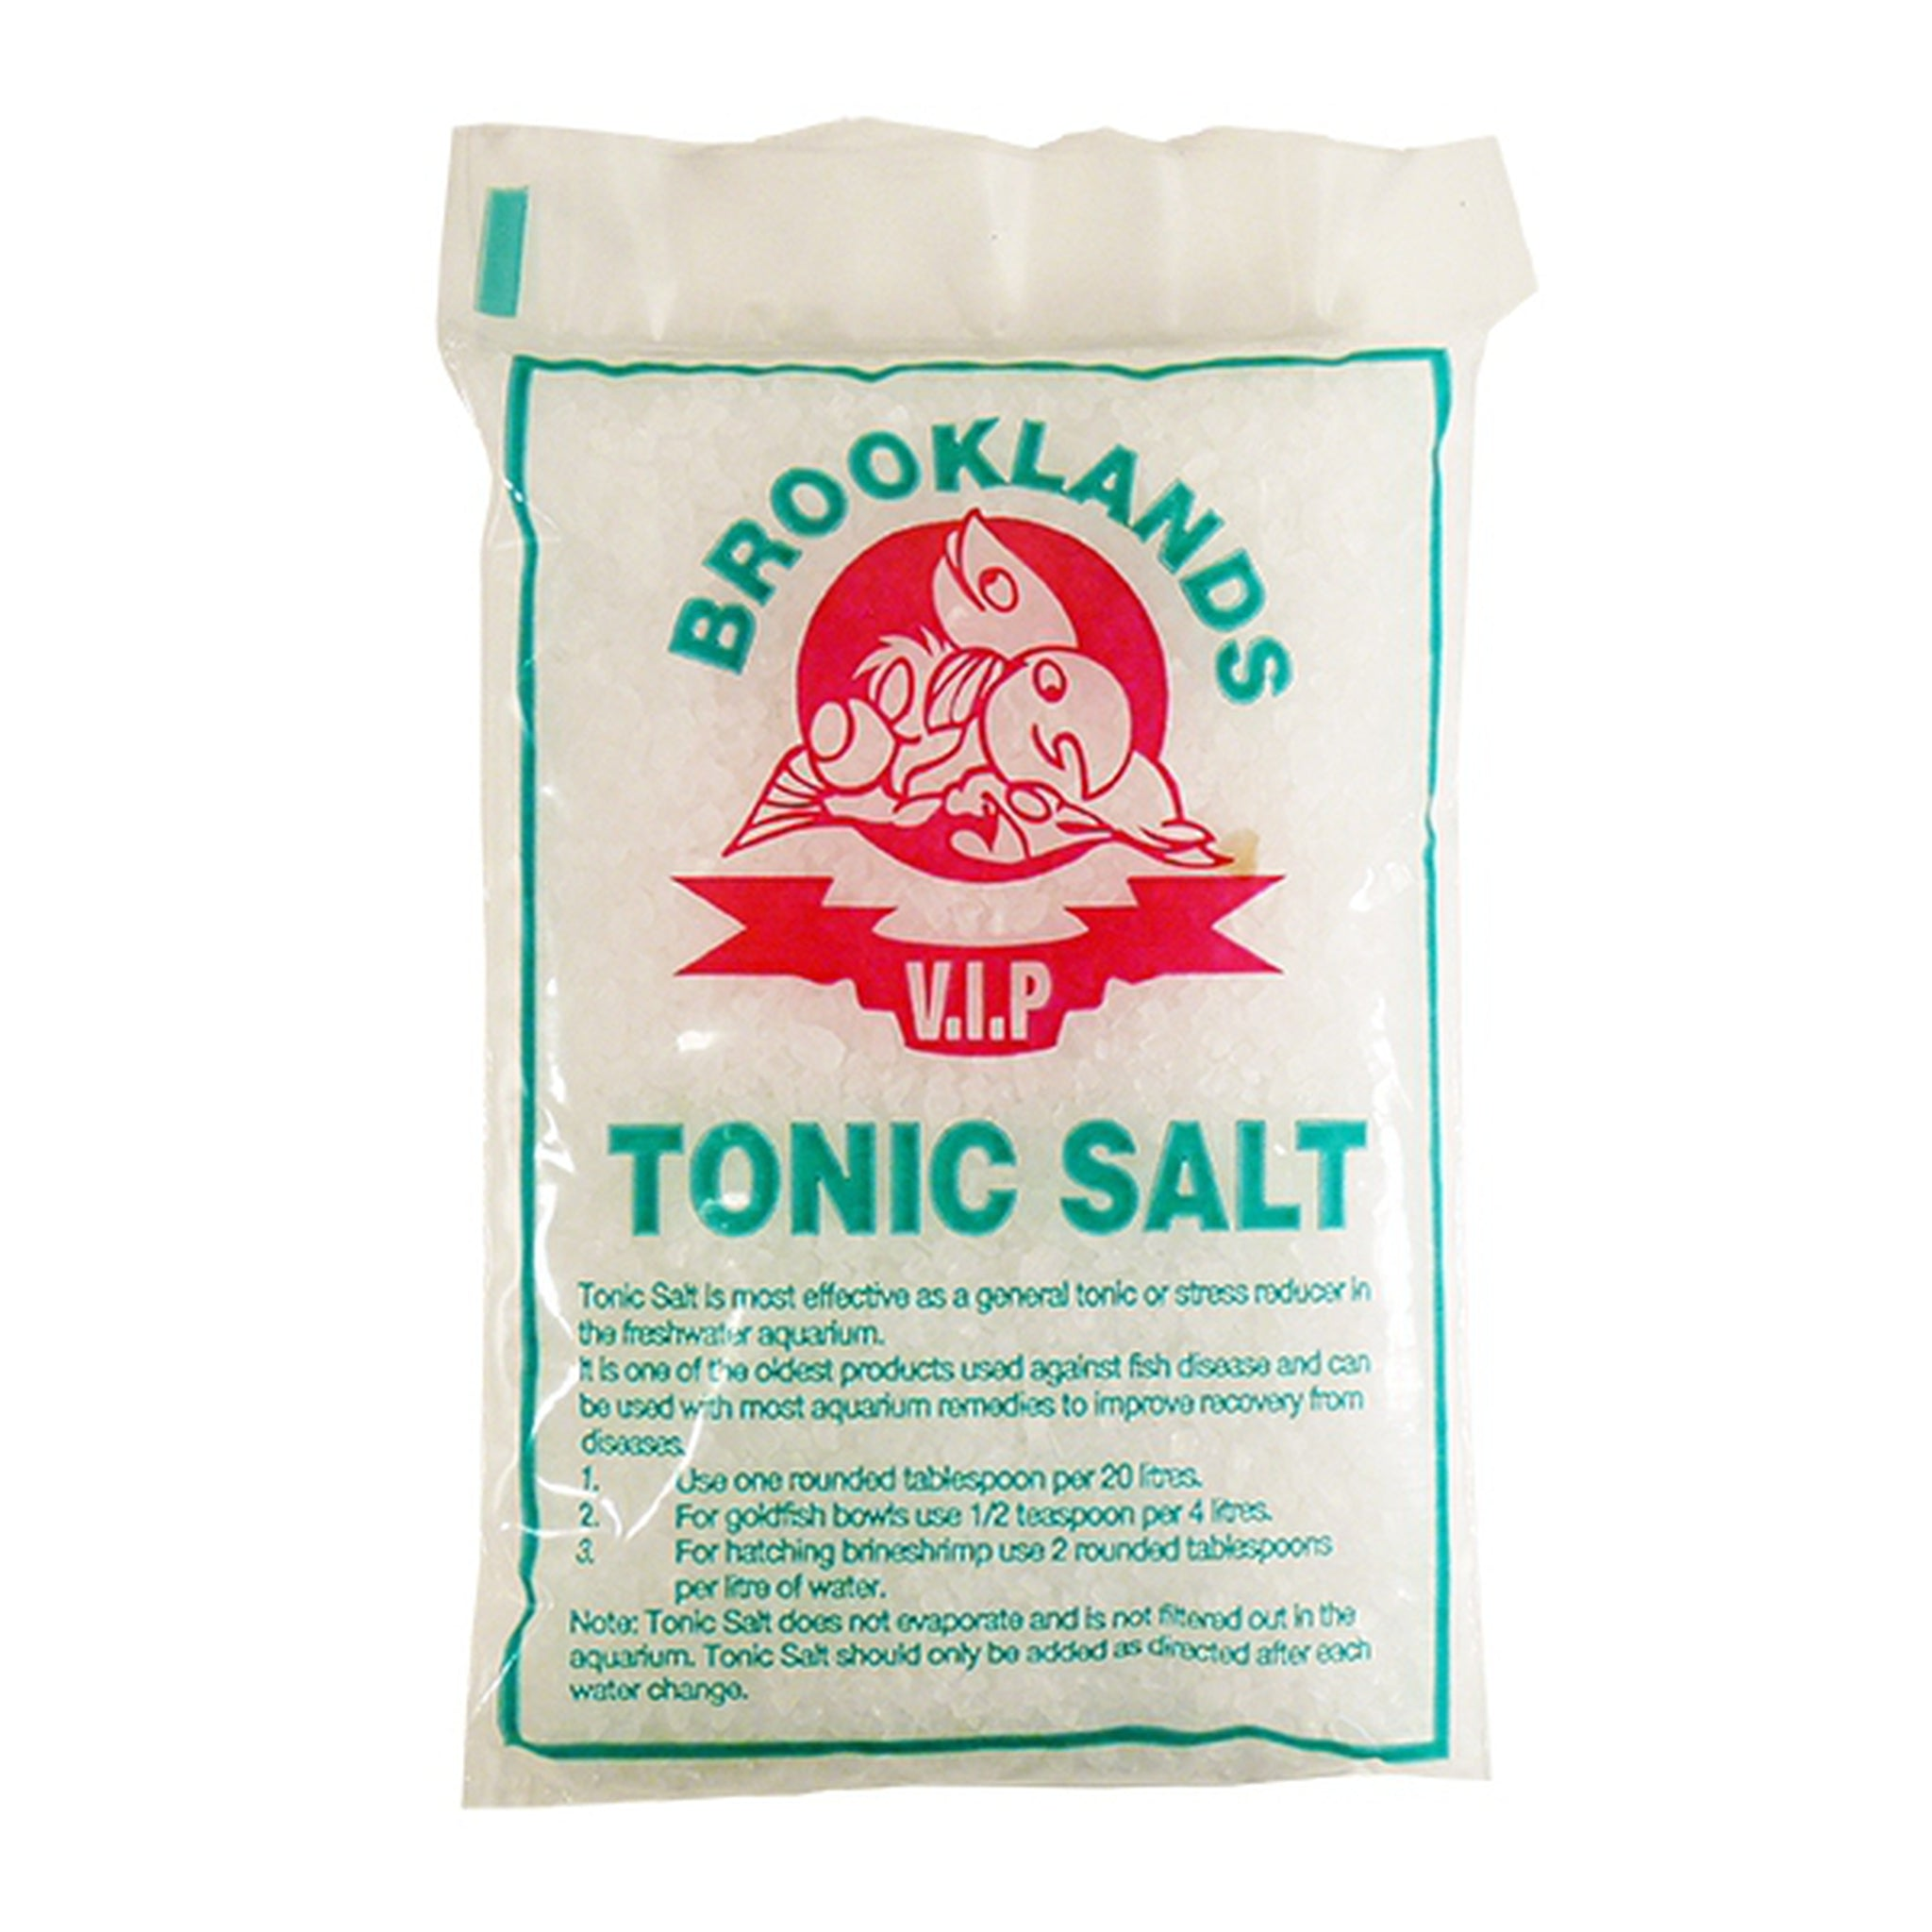 Brooklands Tonic Salt 600g